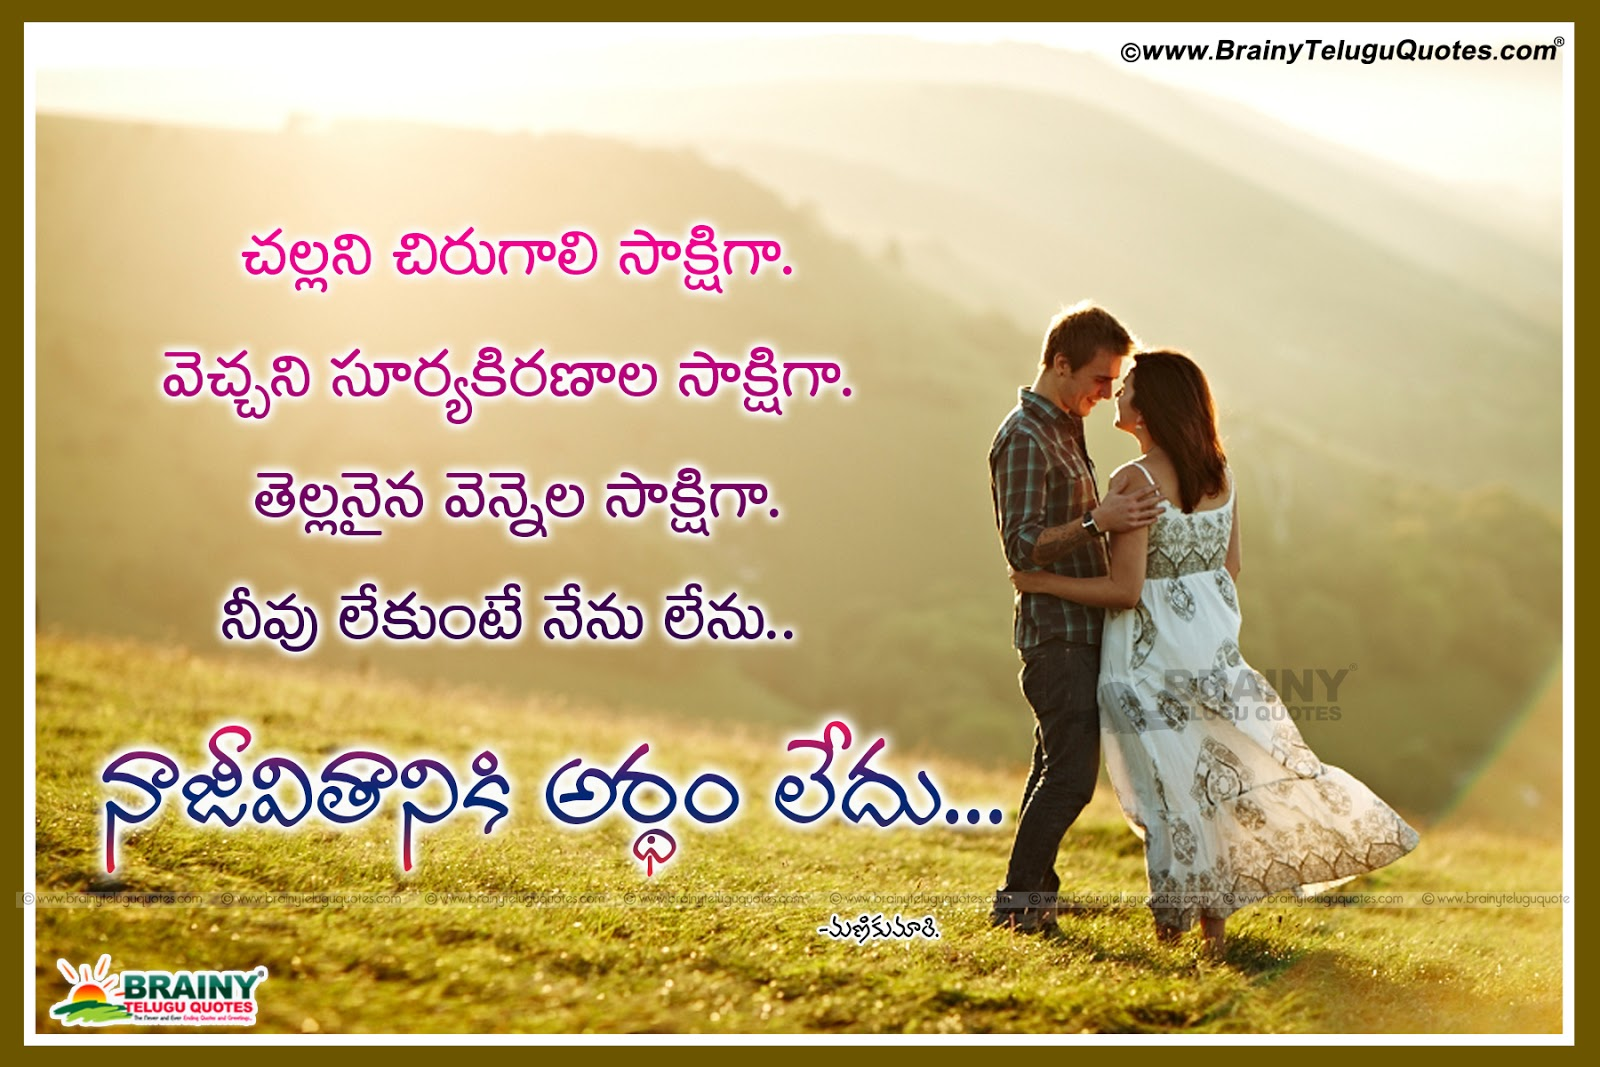 Vinayaka Chavithi Hd Wallpapers Romantic Telugu Love Quotes With Cute Couple Hd Wallpaper